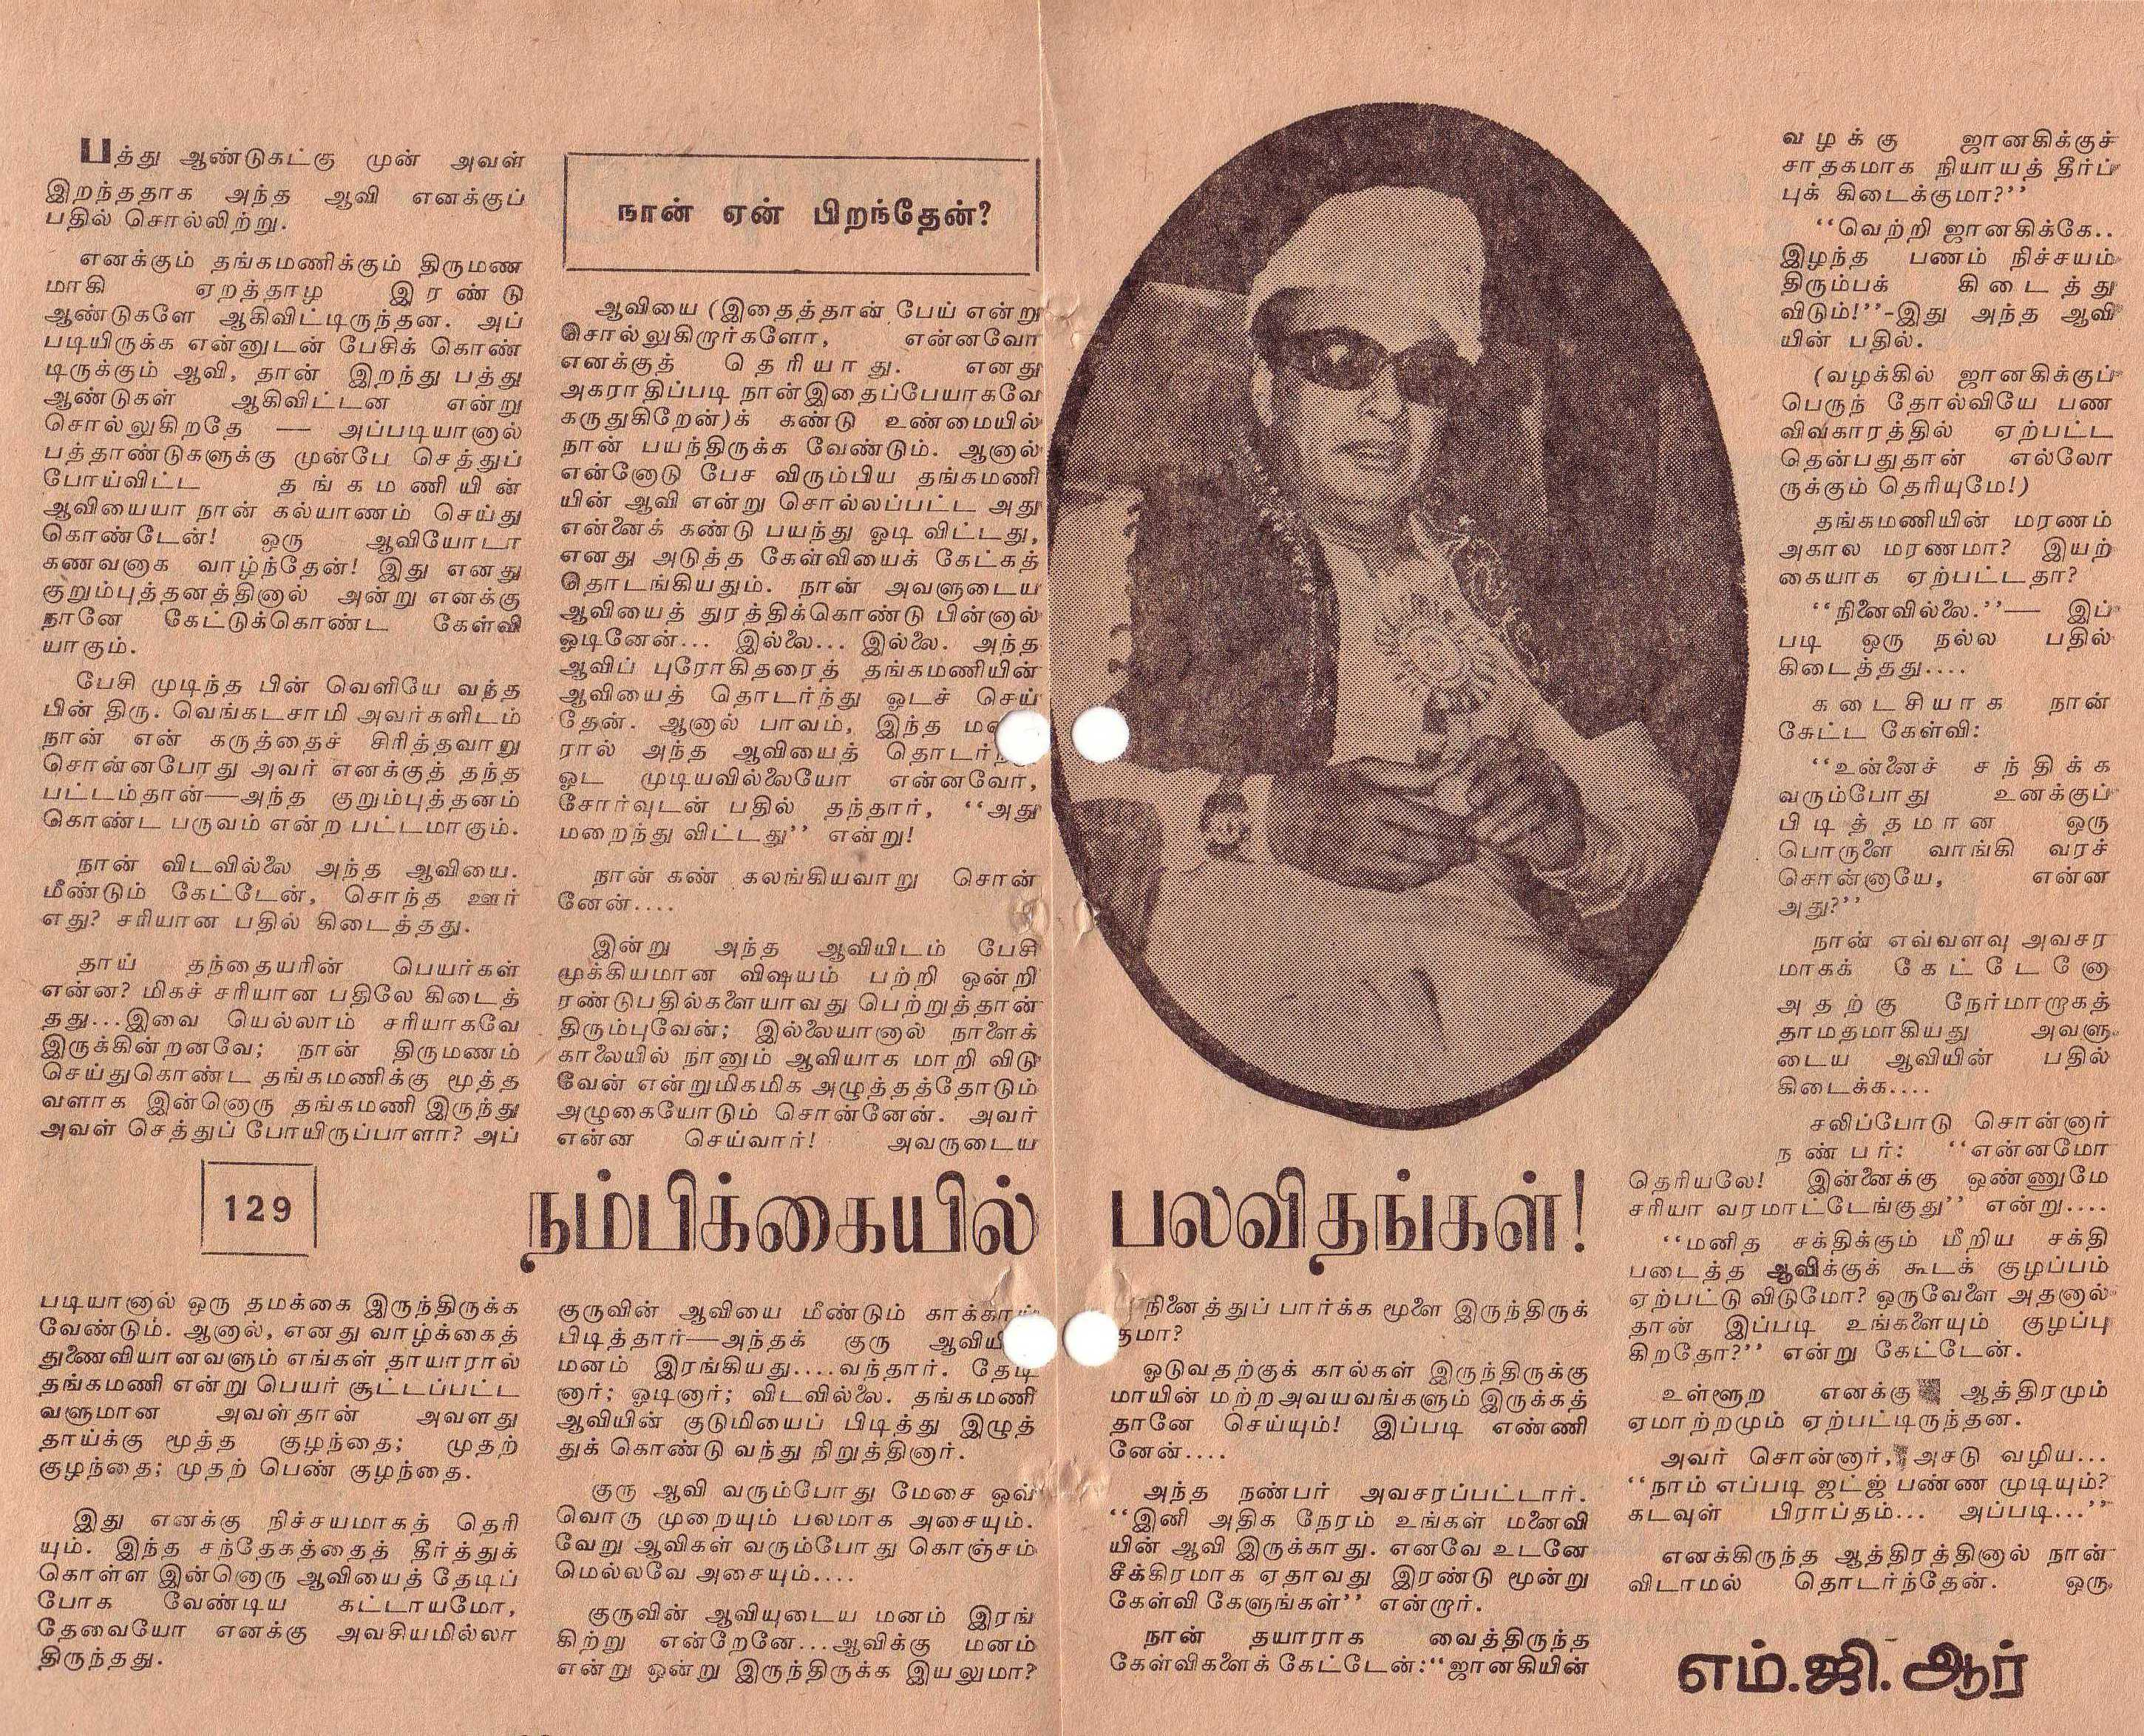 MGR autobiography chapter 129